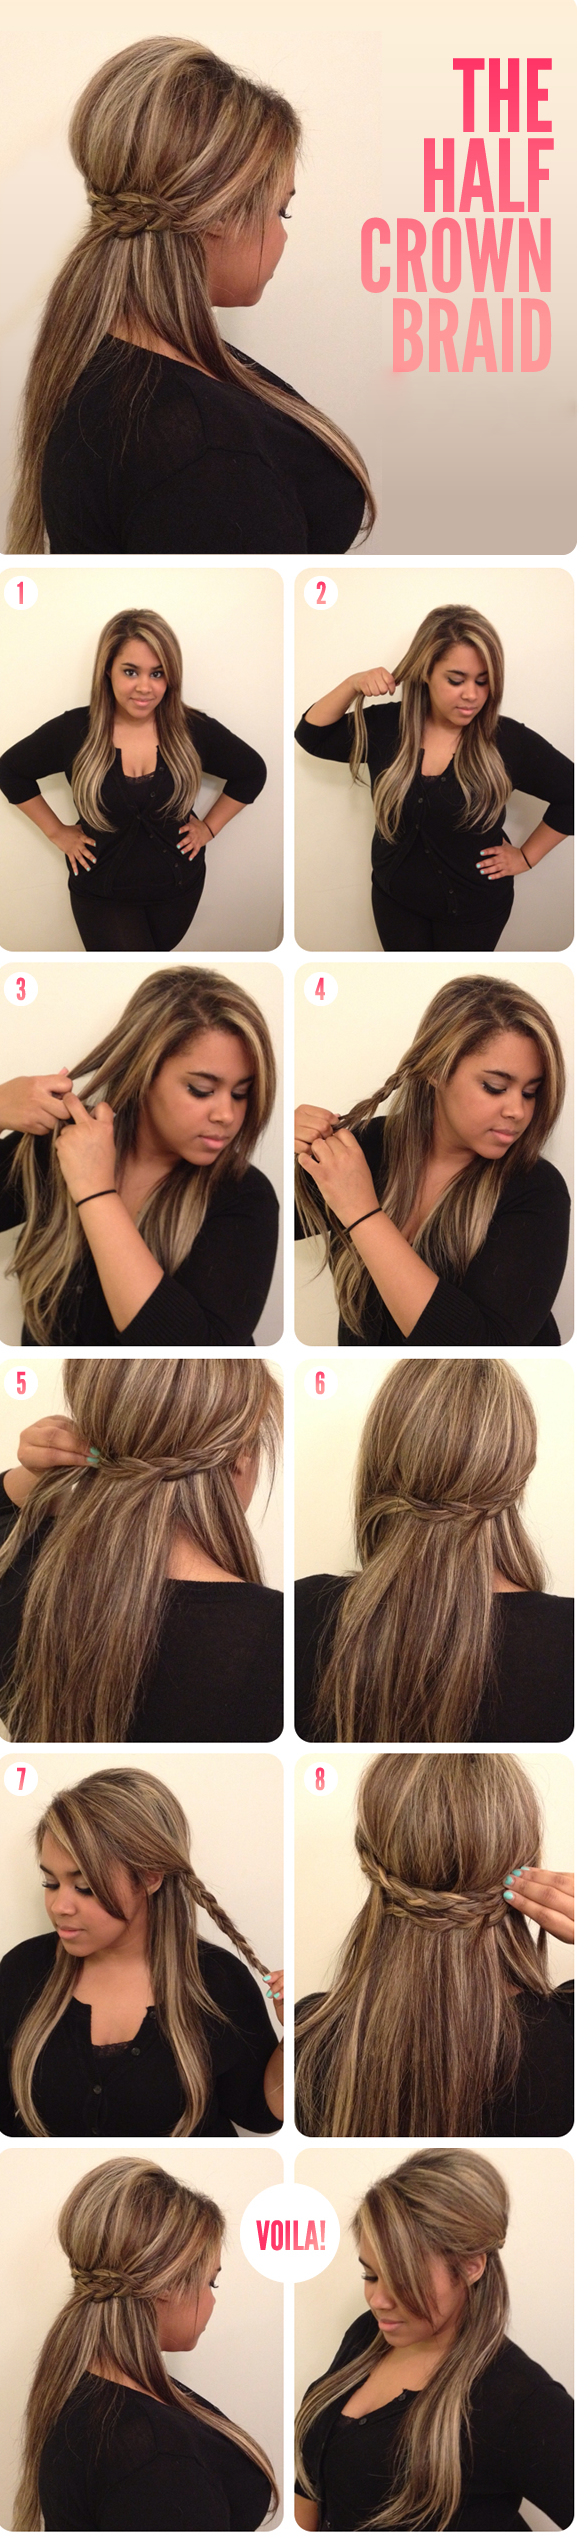 Easy Braided Hairstyles For Beginners | www.imgkid.com ...